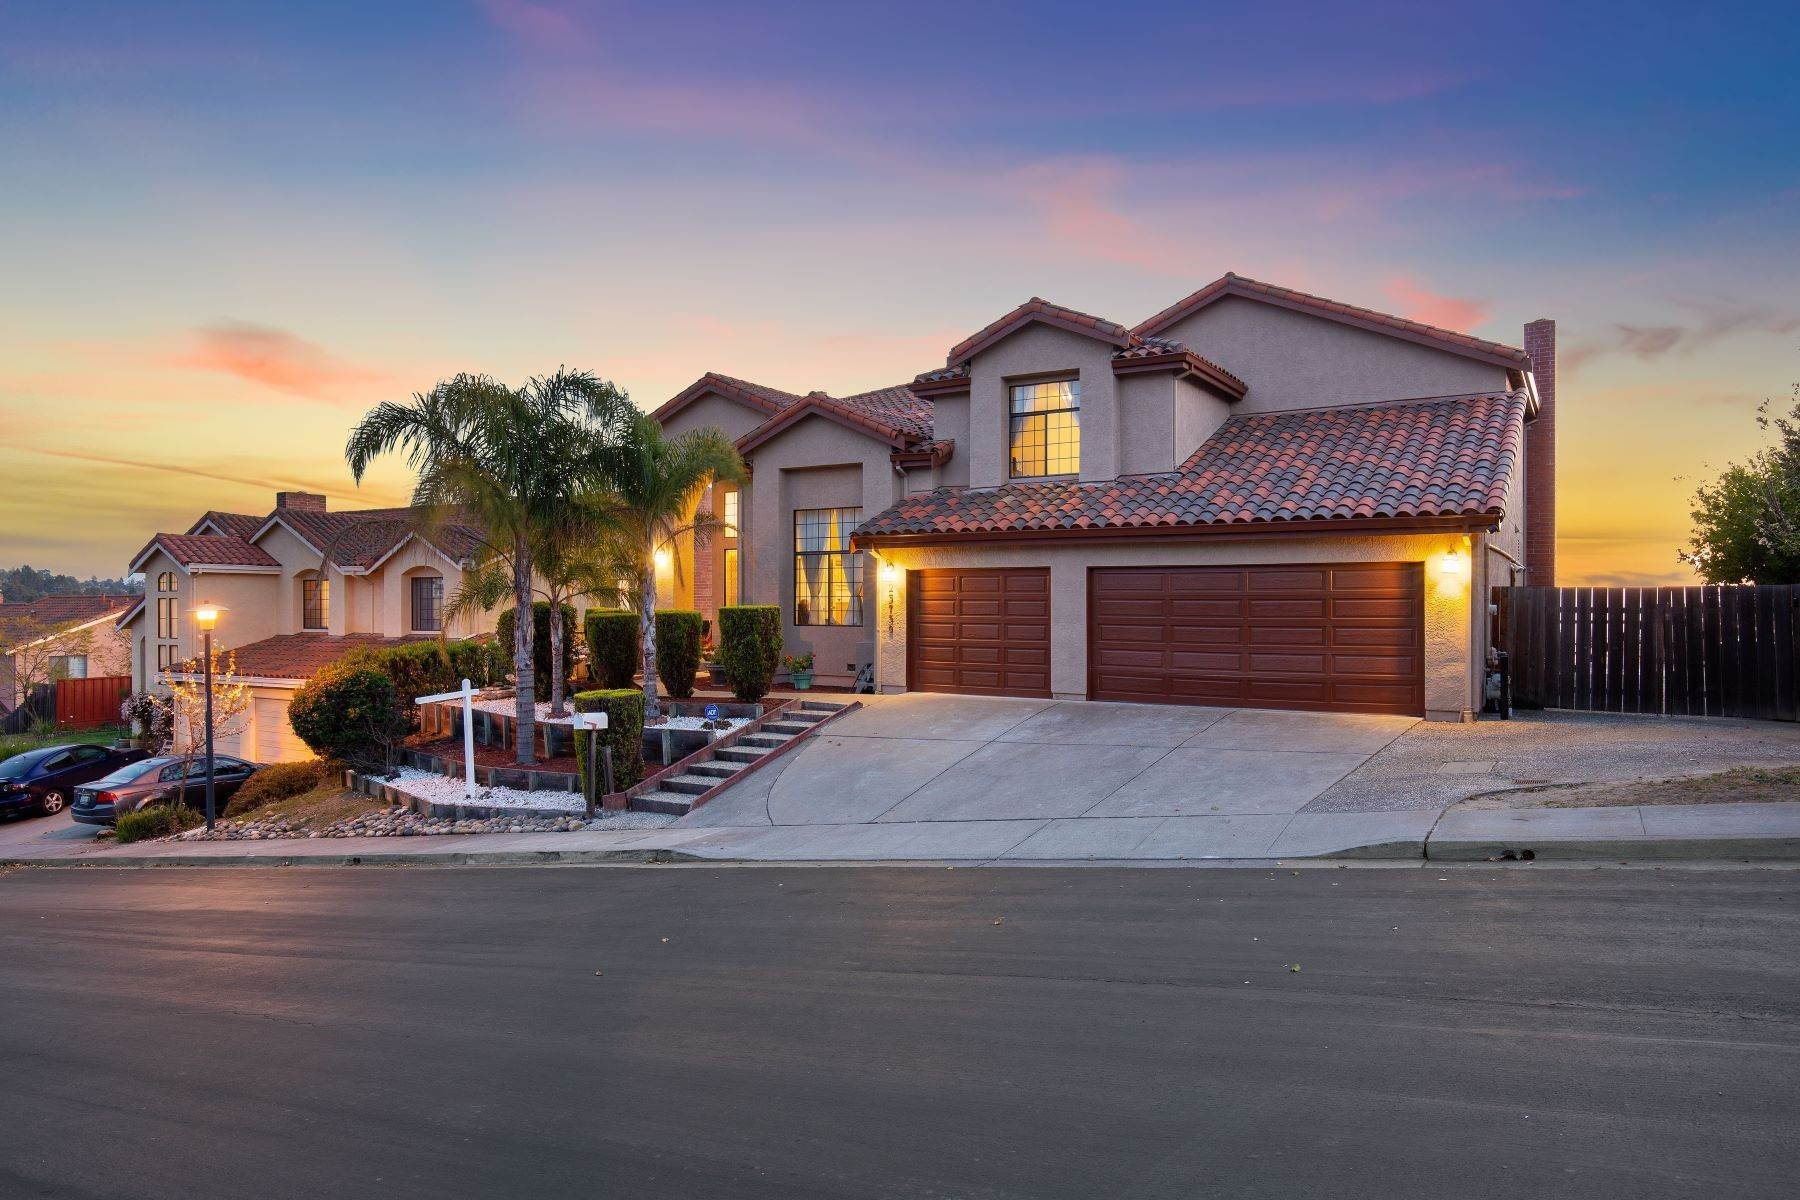 Single Family Homes for Sale at Welcome to Your Dream Home 23739 Carlson Court Hayward, California 94541 United States